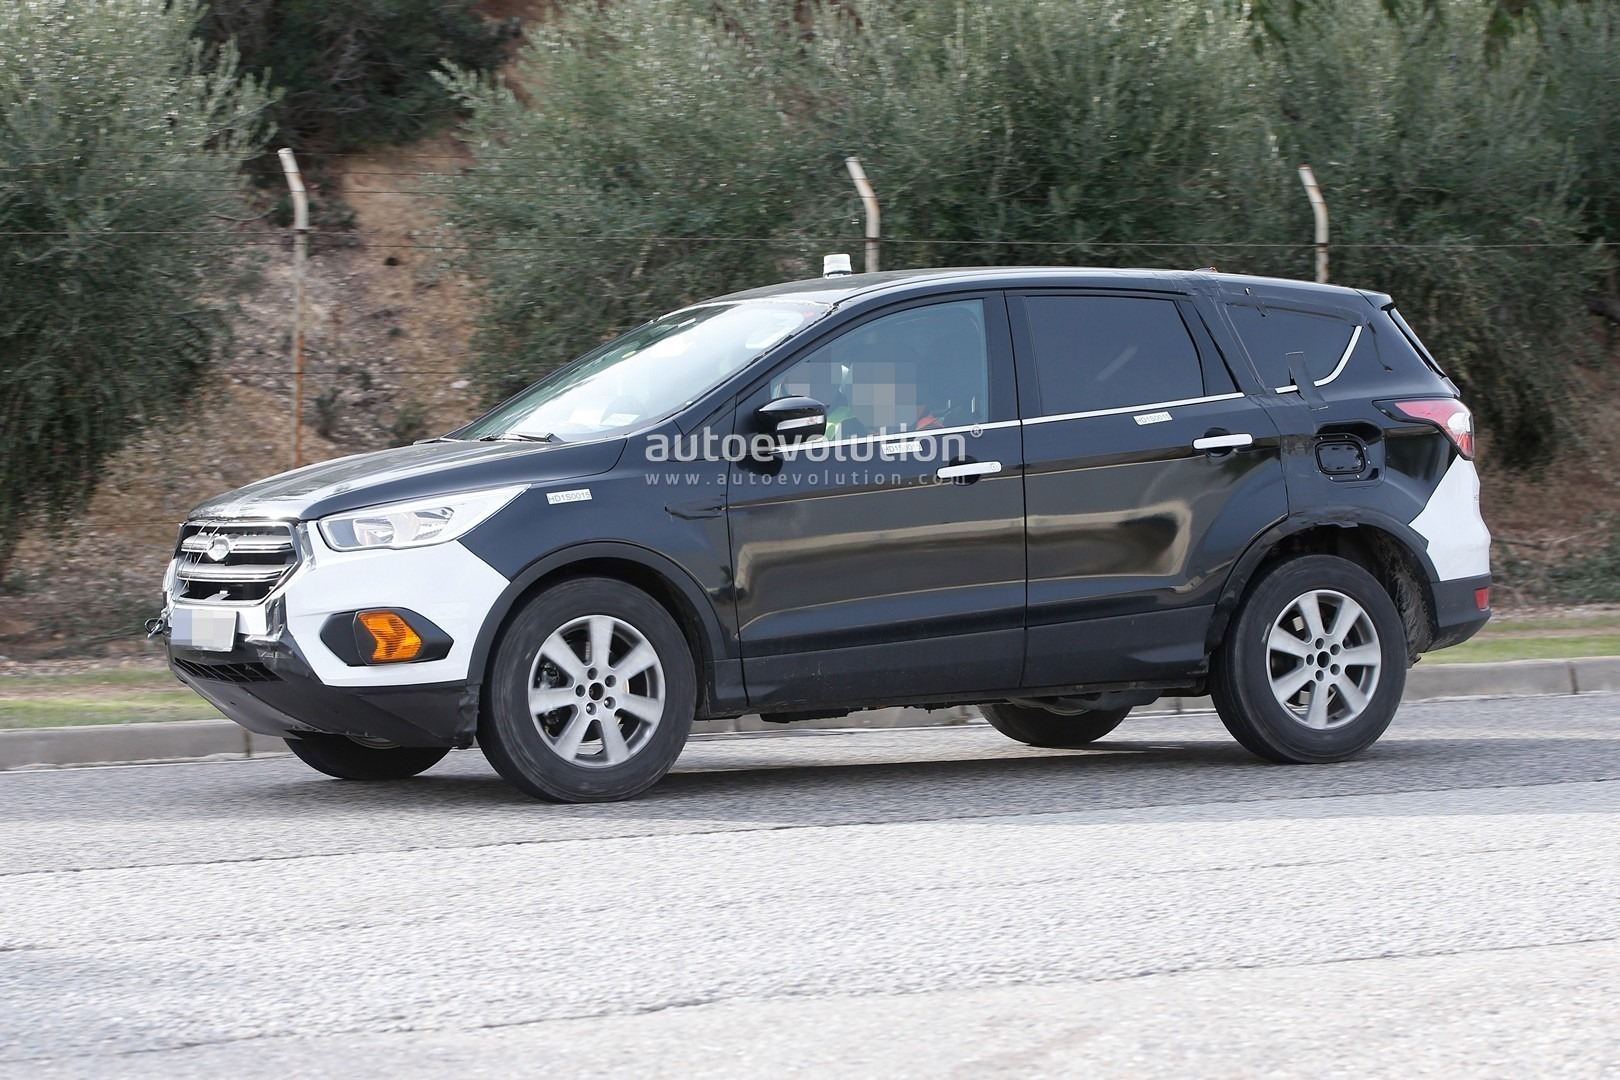 2020 Ford Kuga Hybrid Specs And Release Date >> 2020 Ford Kuga Release Date Best New Suvs